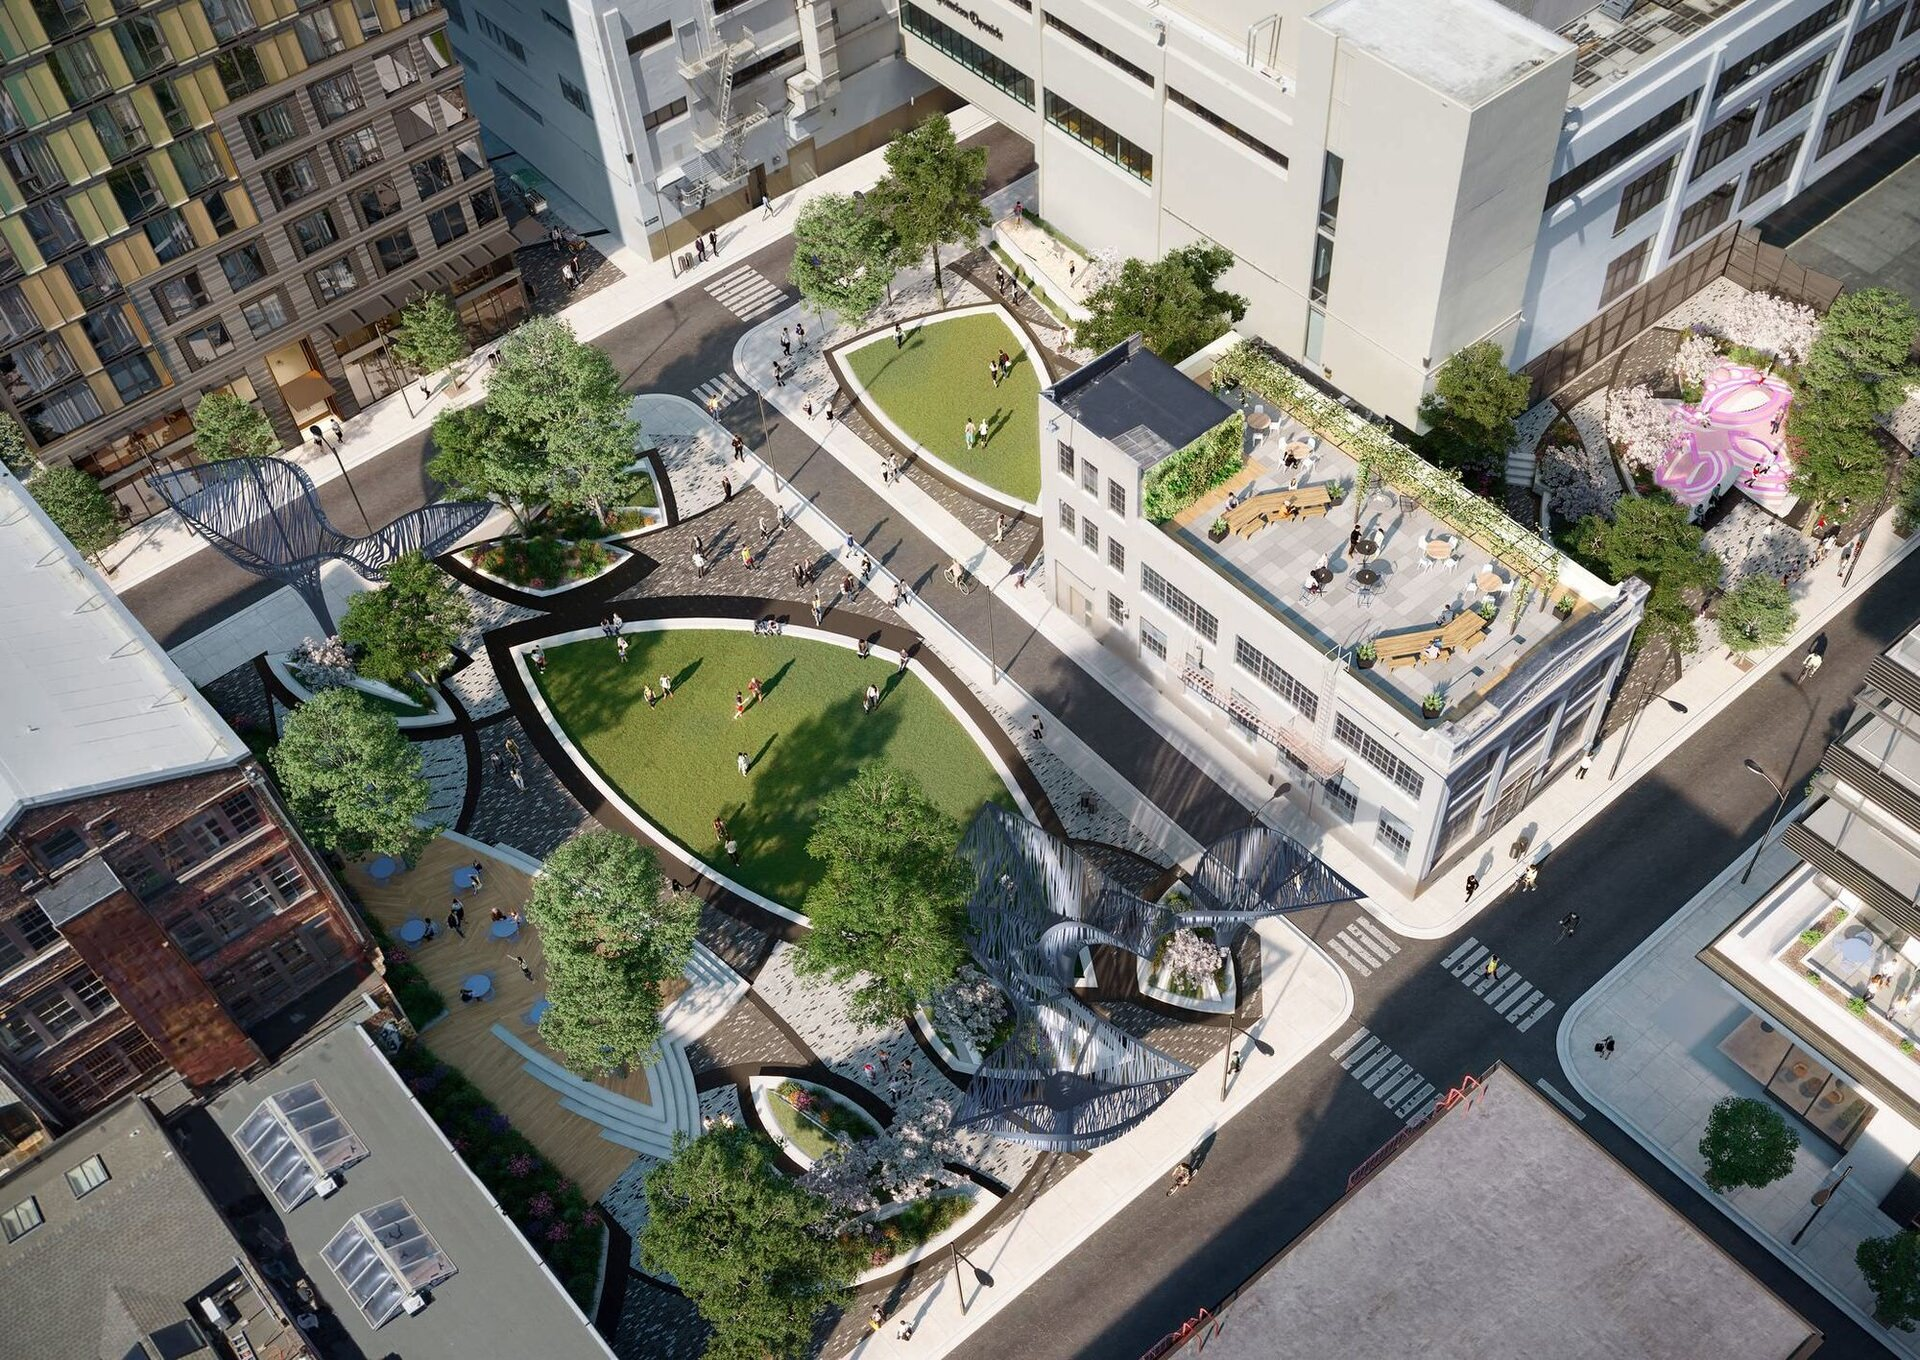 Aerial view of the property showing a rooftop seating area and a sculptural park.